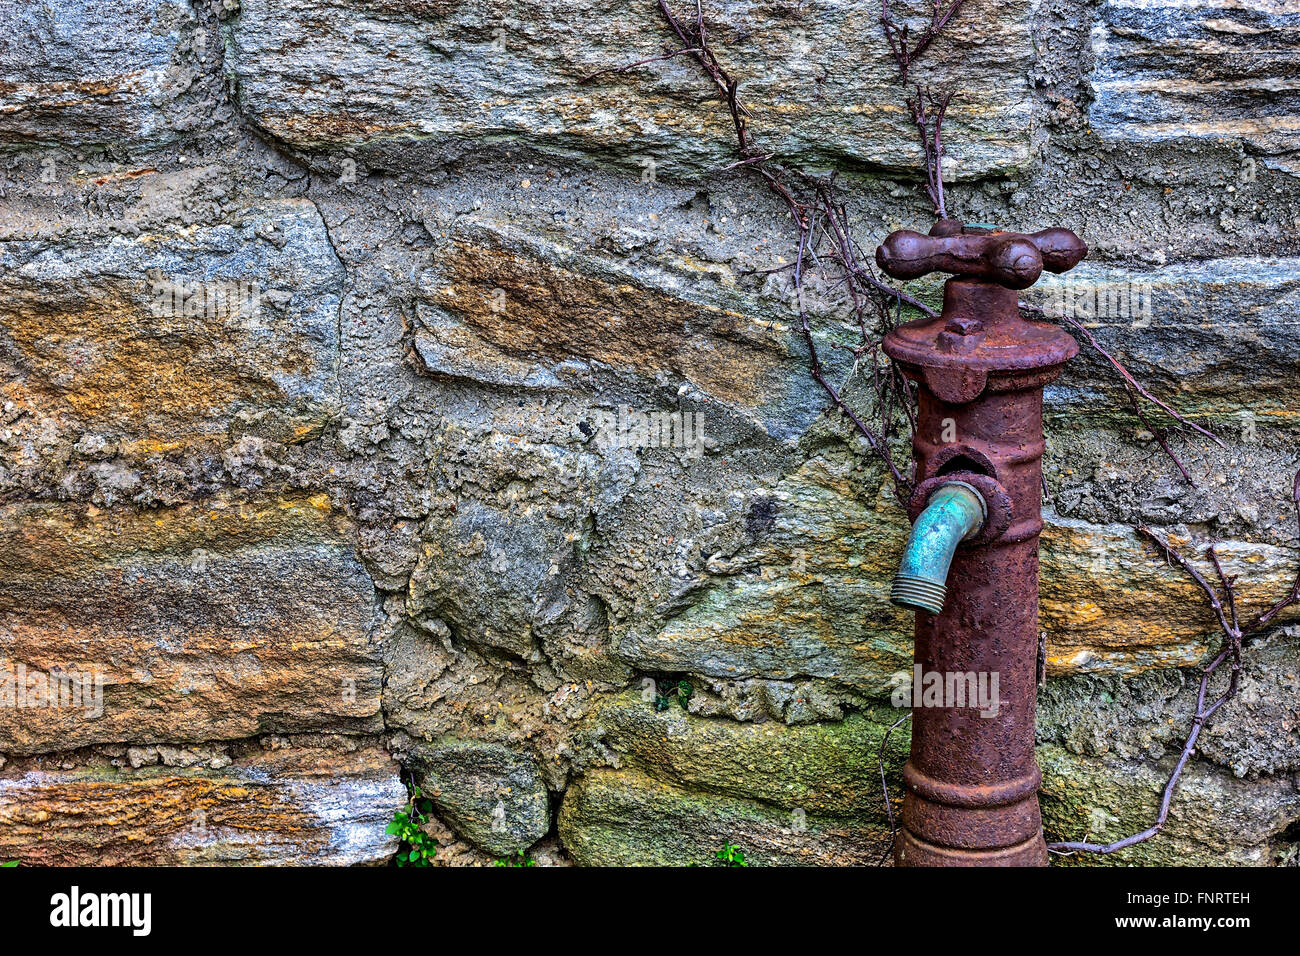 Old Rusty Water Faucet on side of building Stock Photo: 99483737 - Alamy